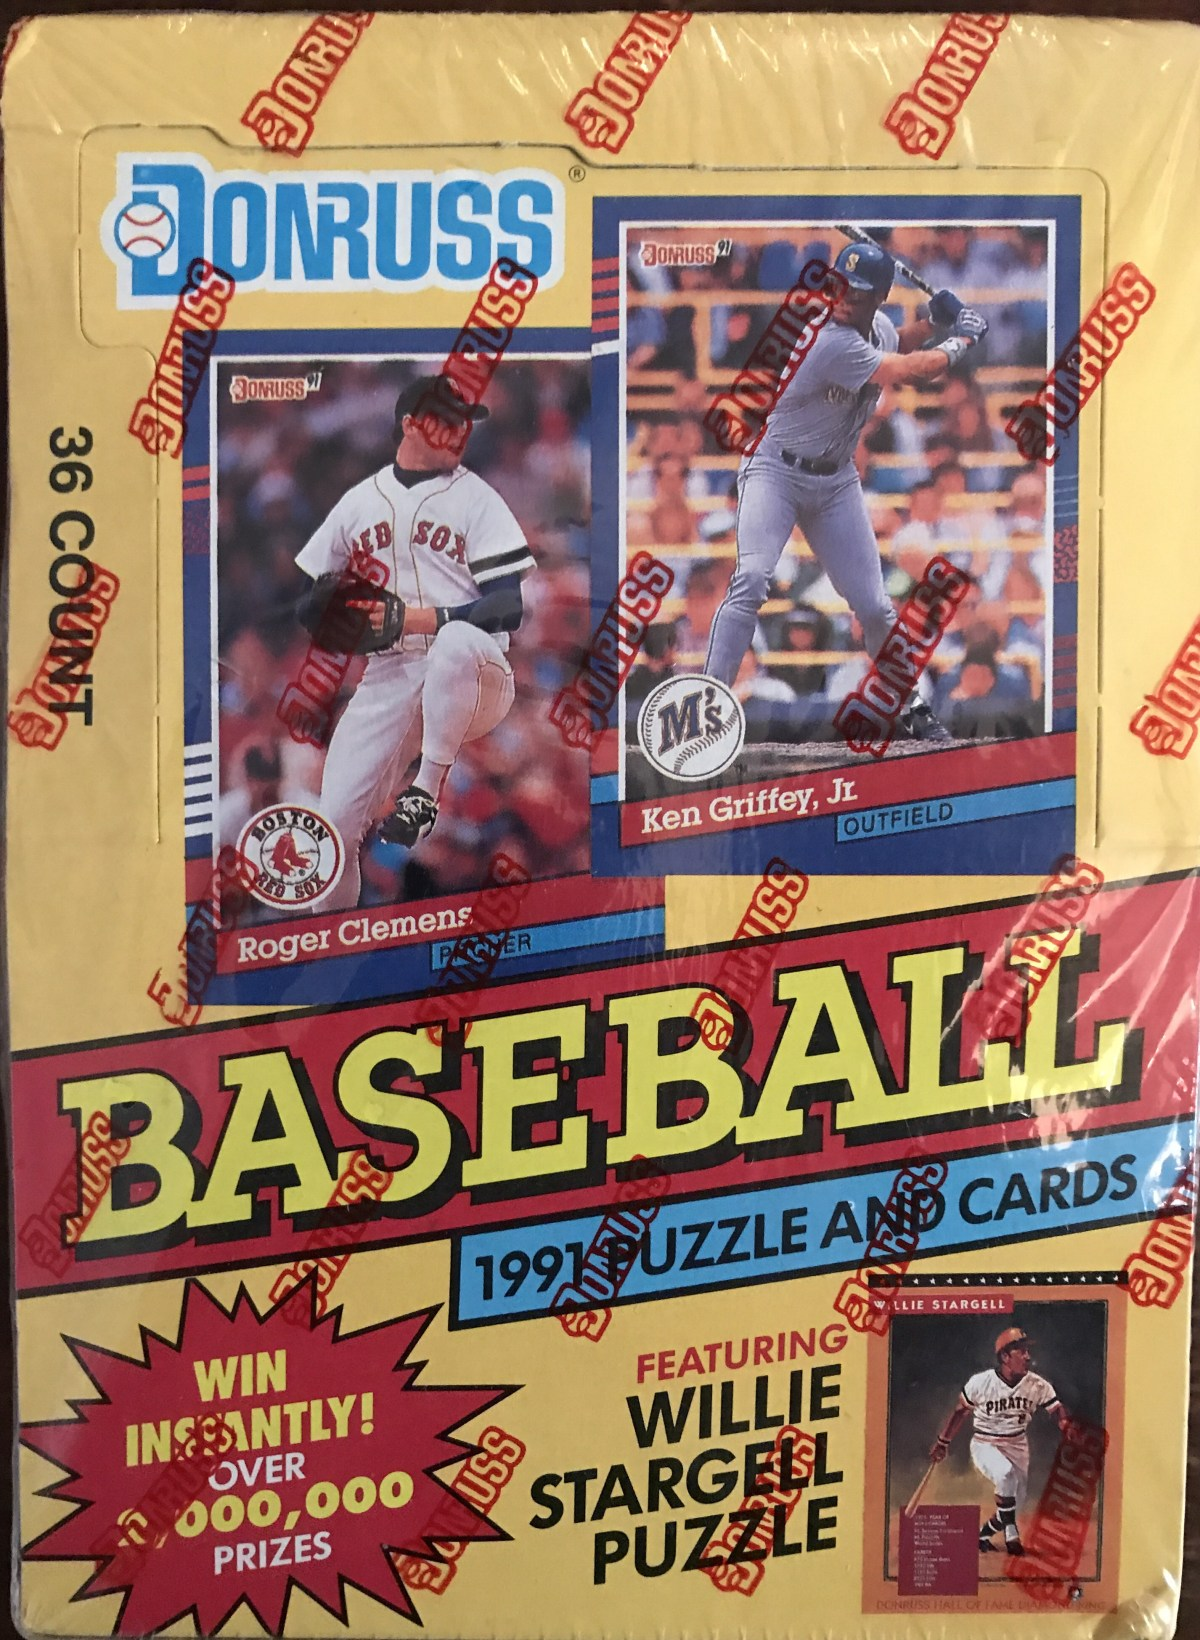 1991 Donruss – The Elite Quest